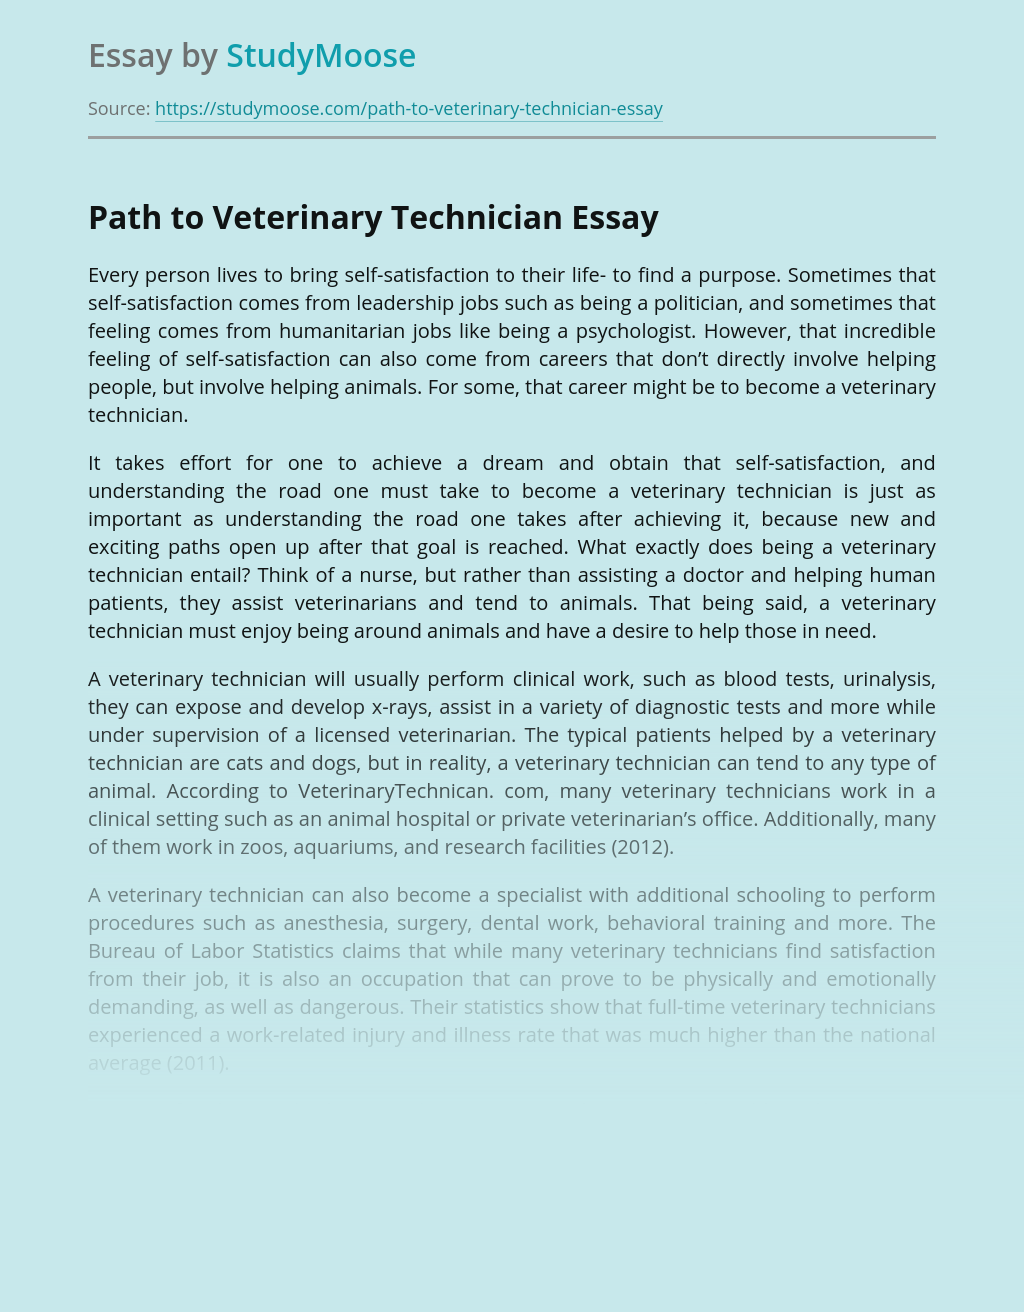 Path to Veterinary Technician